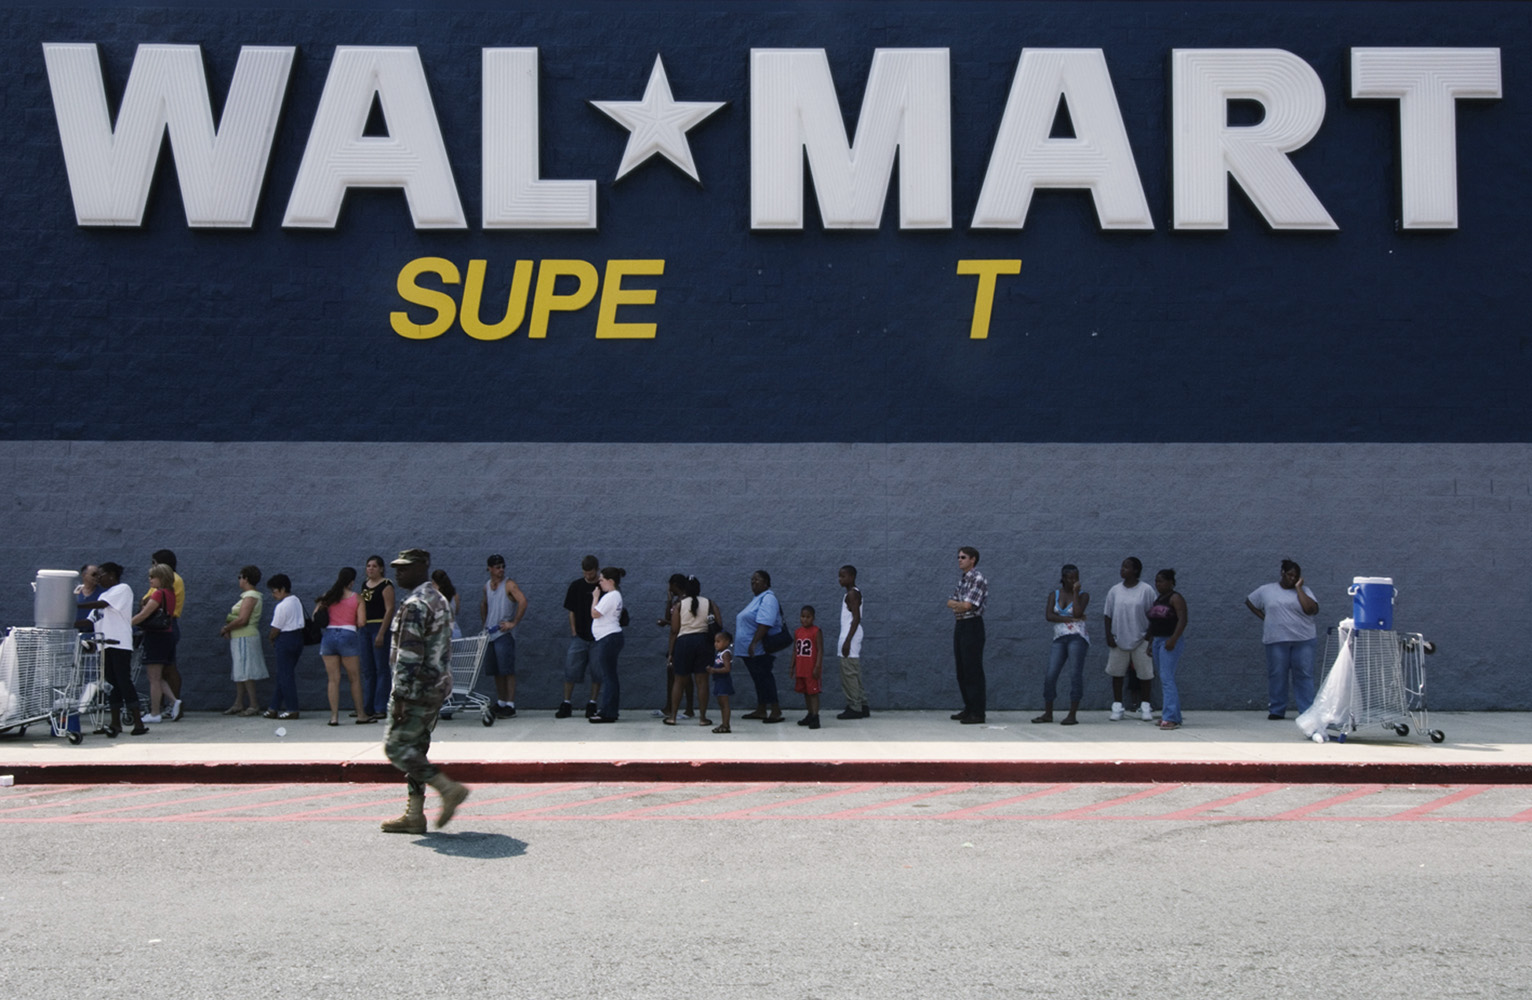 Location: Boutte, community near Orleans, Lousiana, US. A National Guard soldier patrols outside a Wal-Mart store as residents wait to purchase emergency supplies.  Police and soldiers with assault rifles have been guarding the store around the clock.